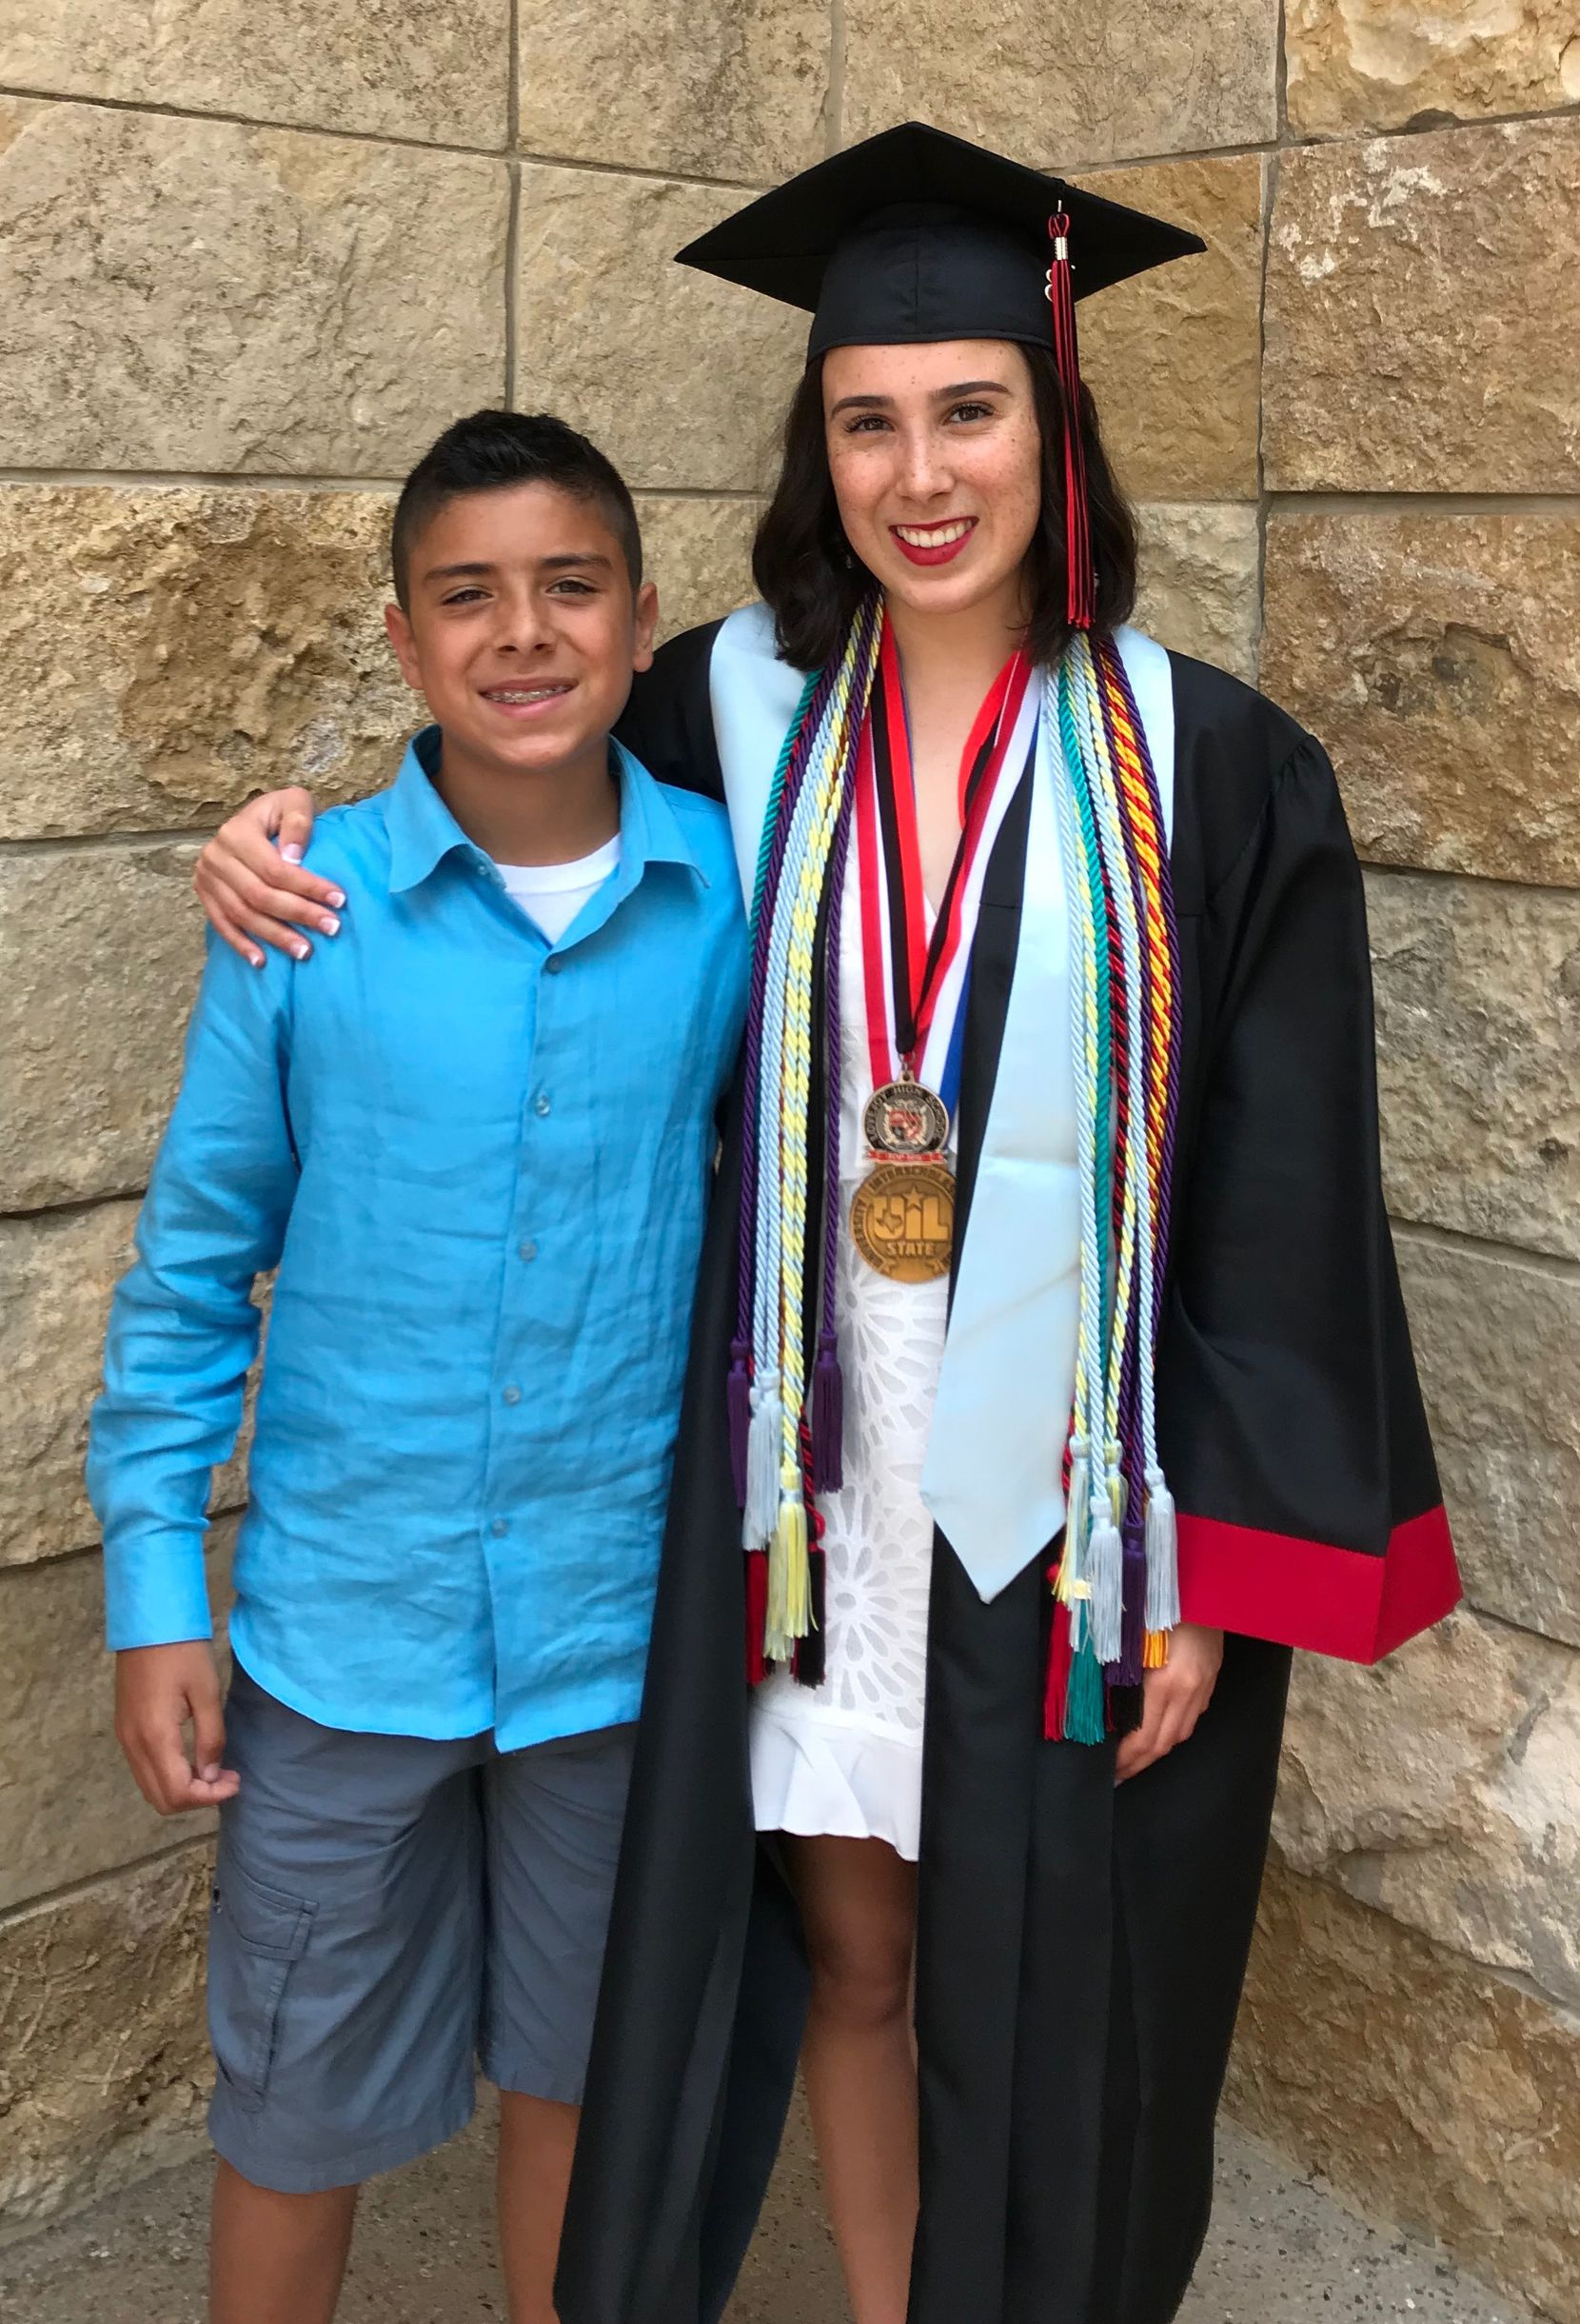 Hannah Ortega poses with her younger brother.